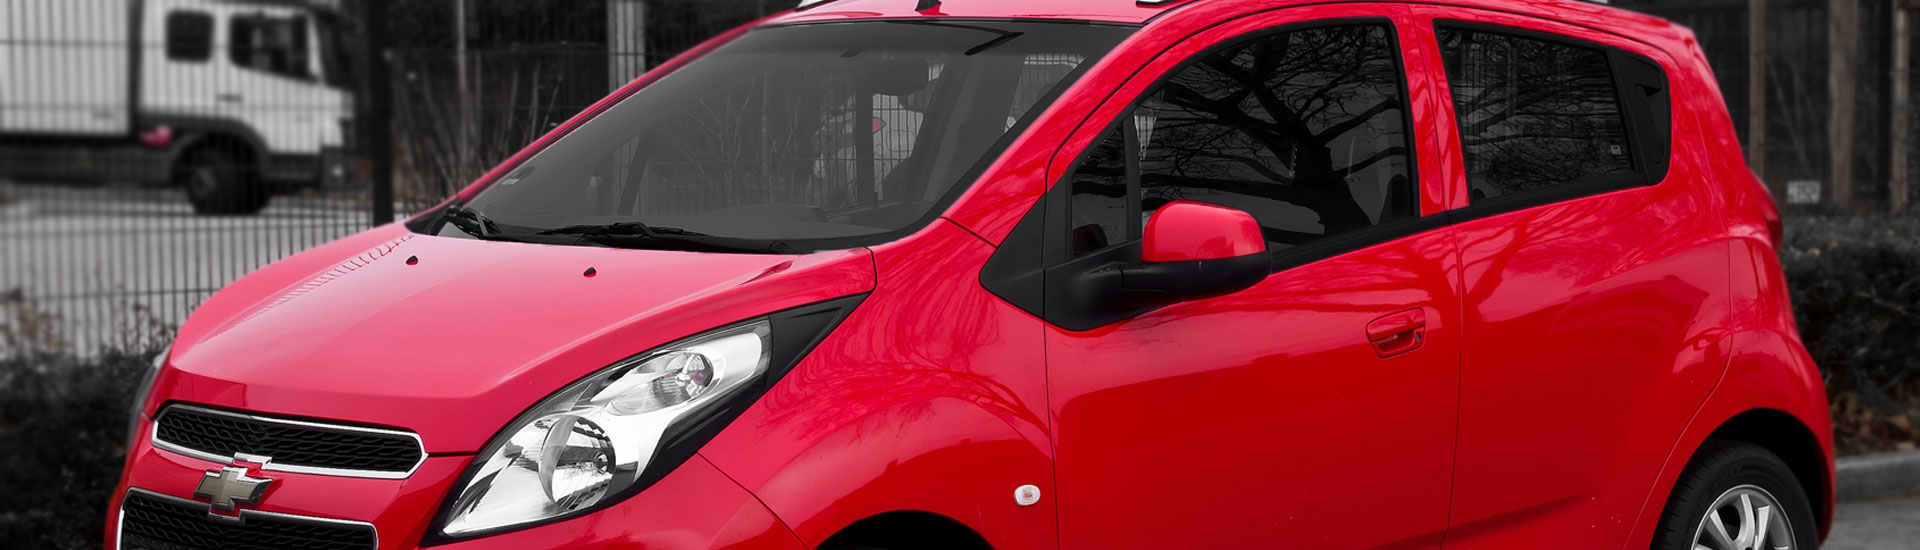 Chevrolet Spark Window Tint